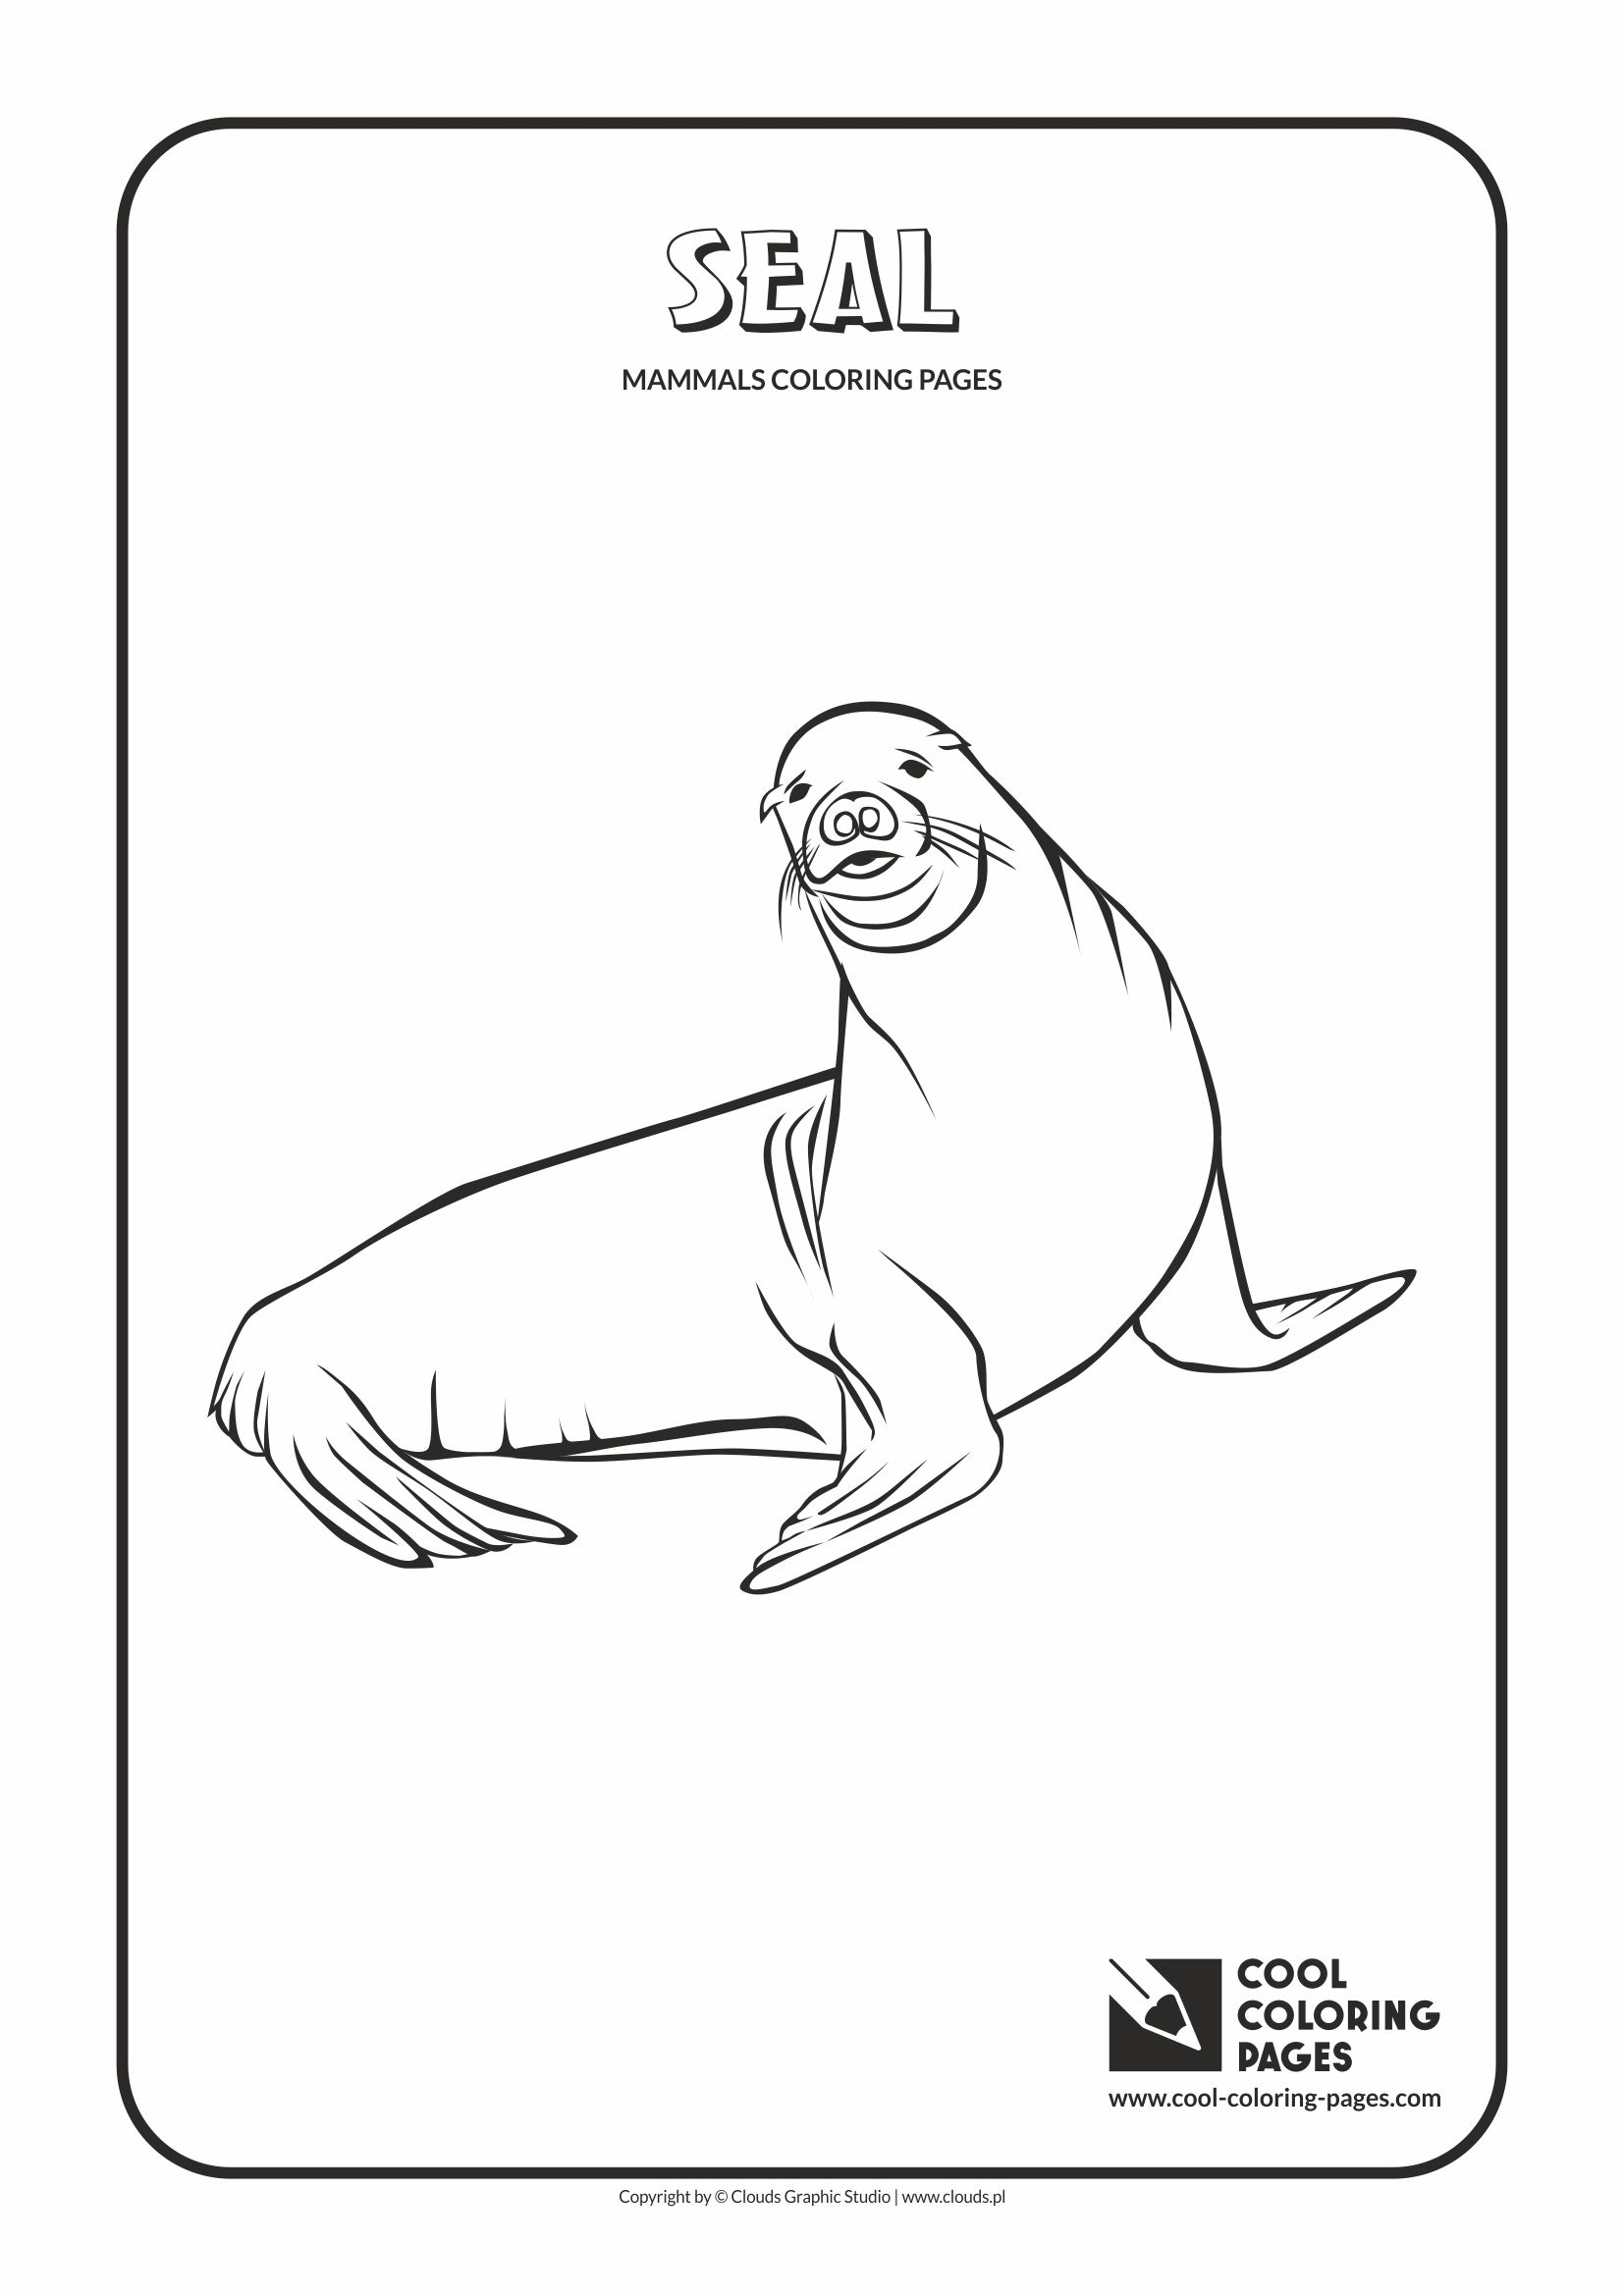 Cool Coloring Pages - Animals / Seal / Coloring page with seal